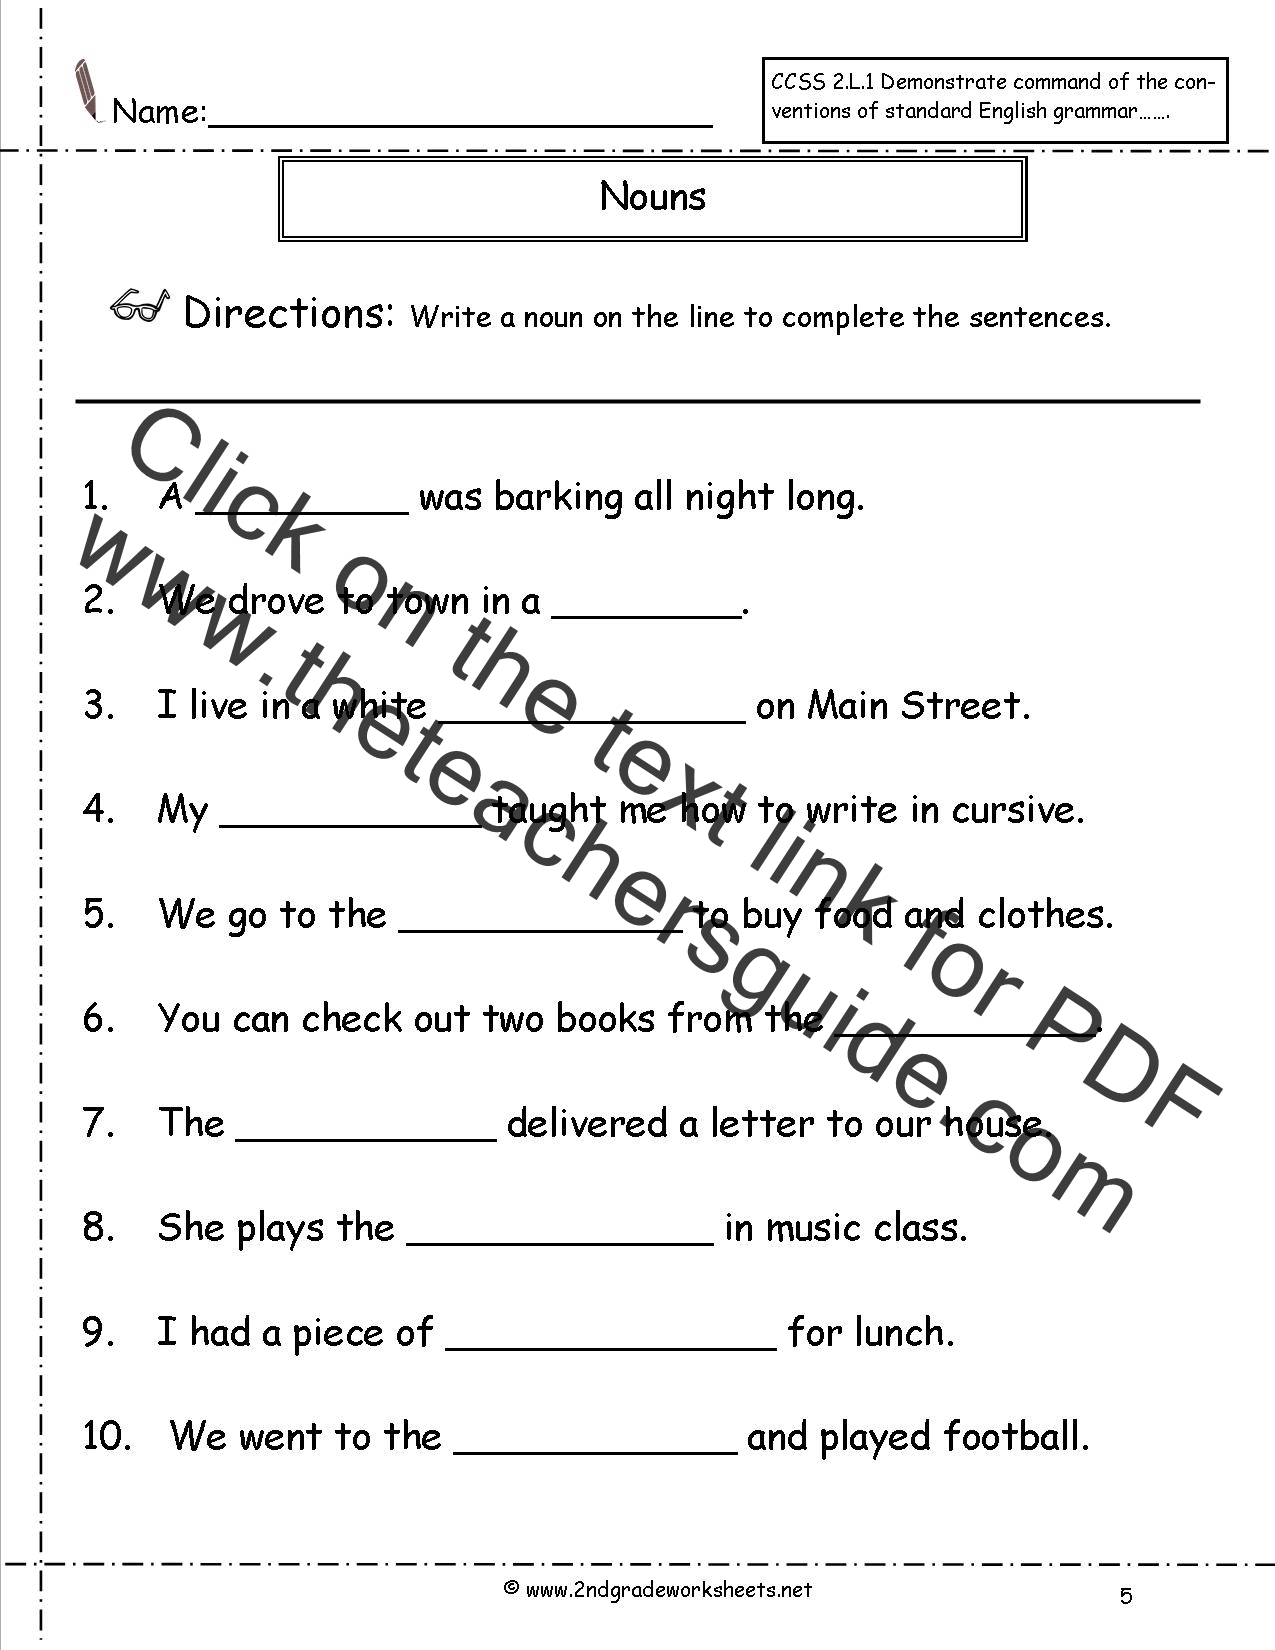 Worksheets Grammar Worksheets For 2nd Grade nouns worksheets and printouts worksheet